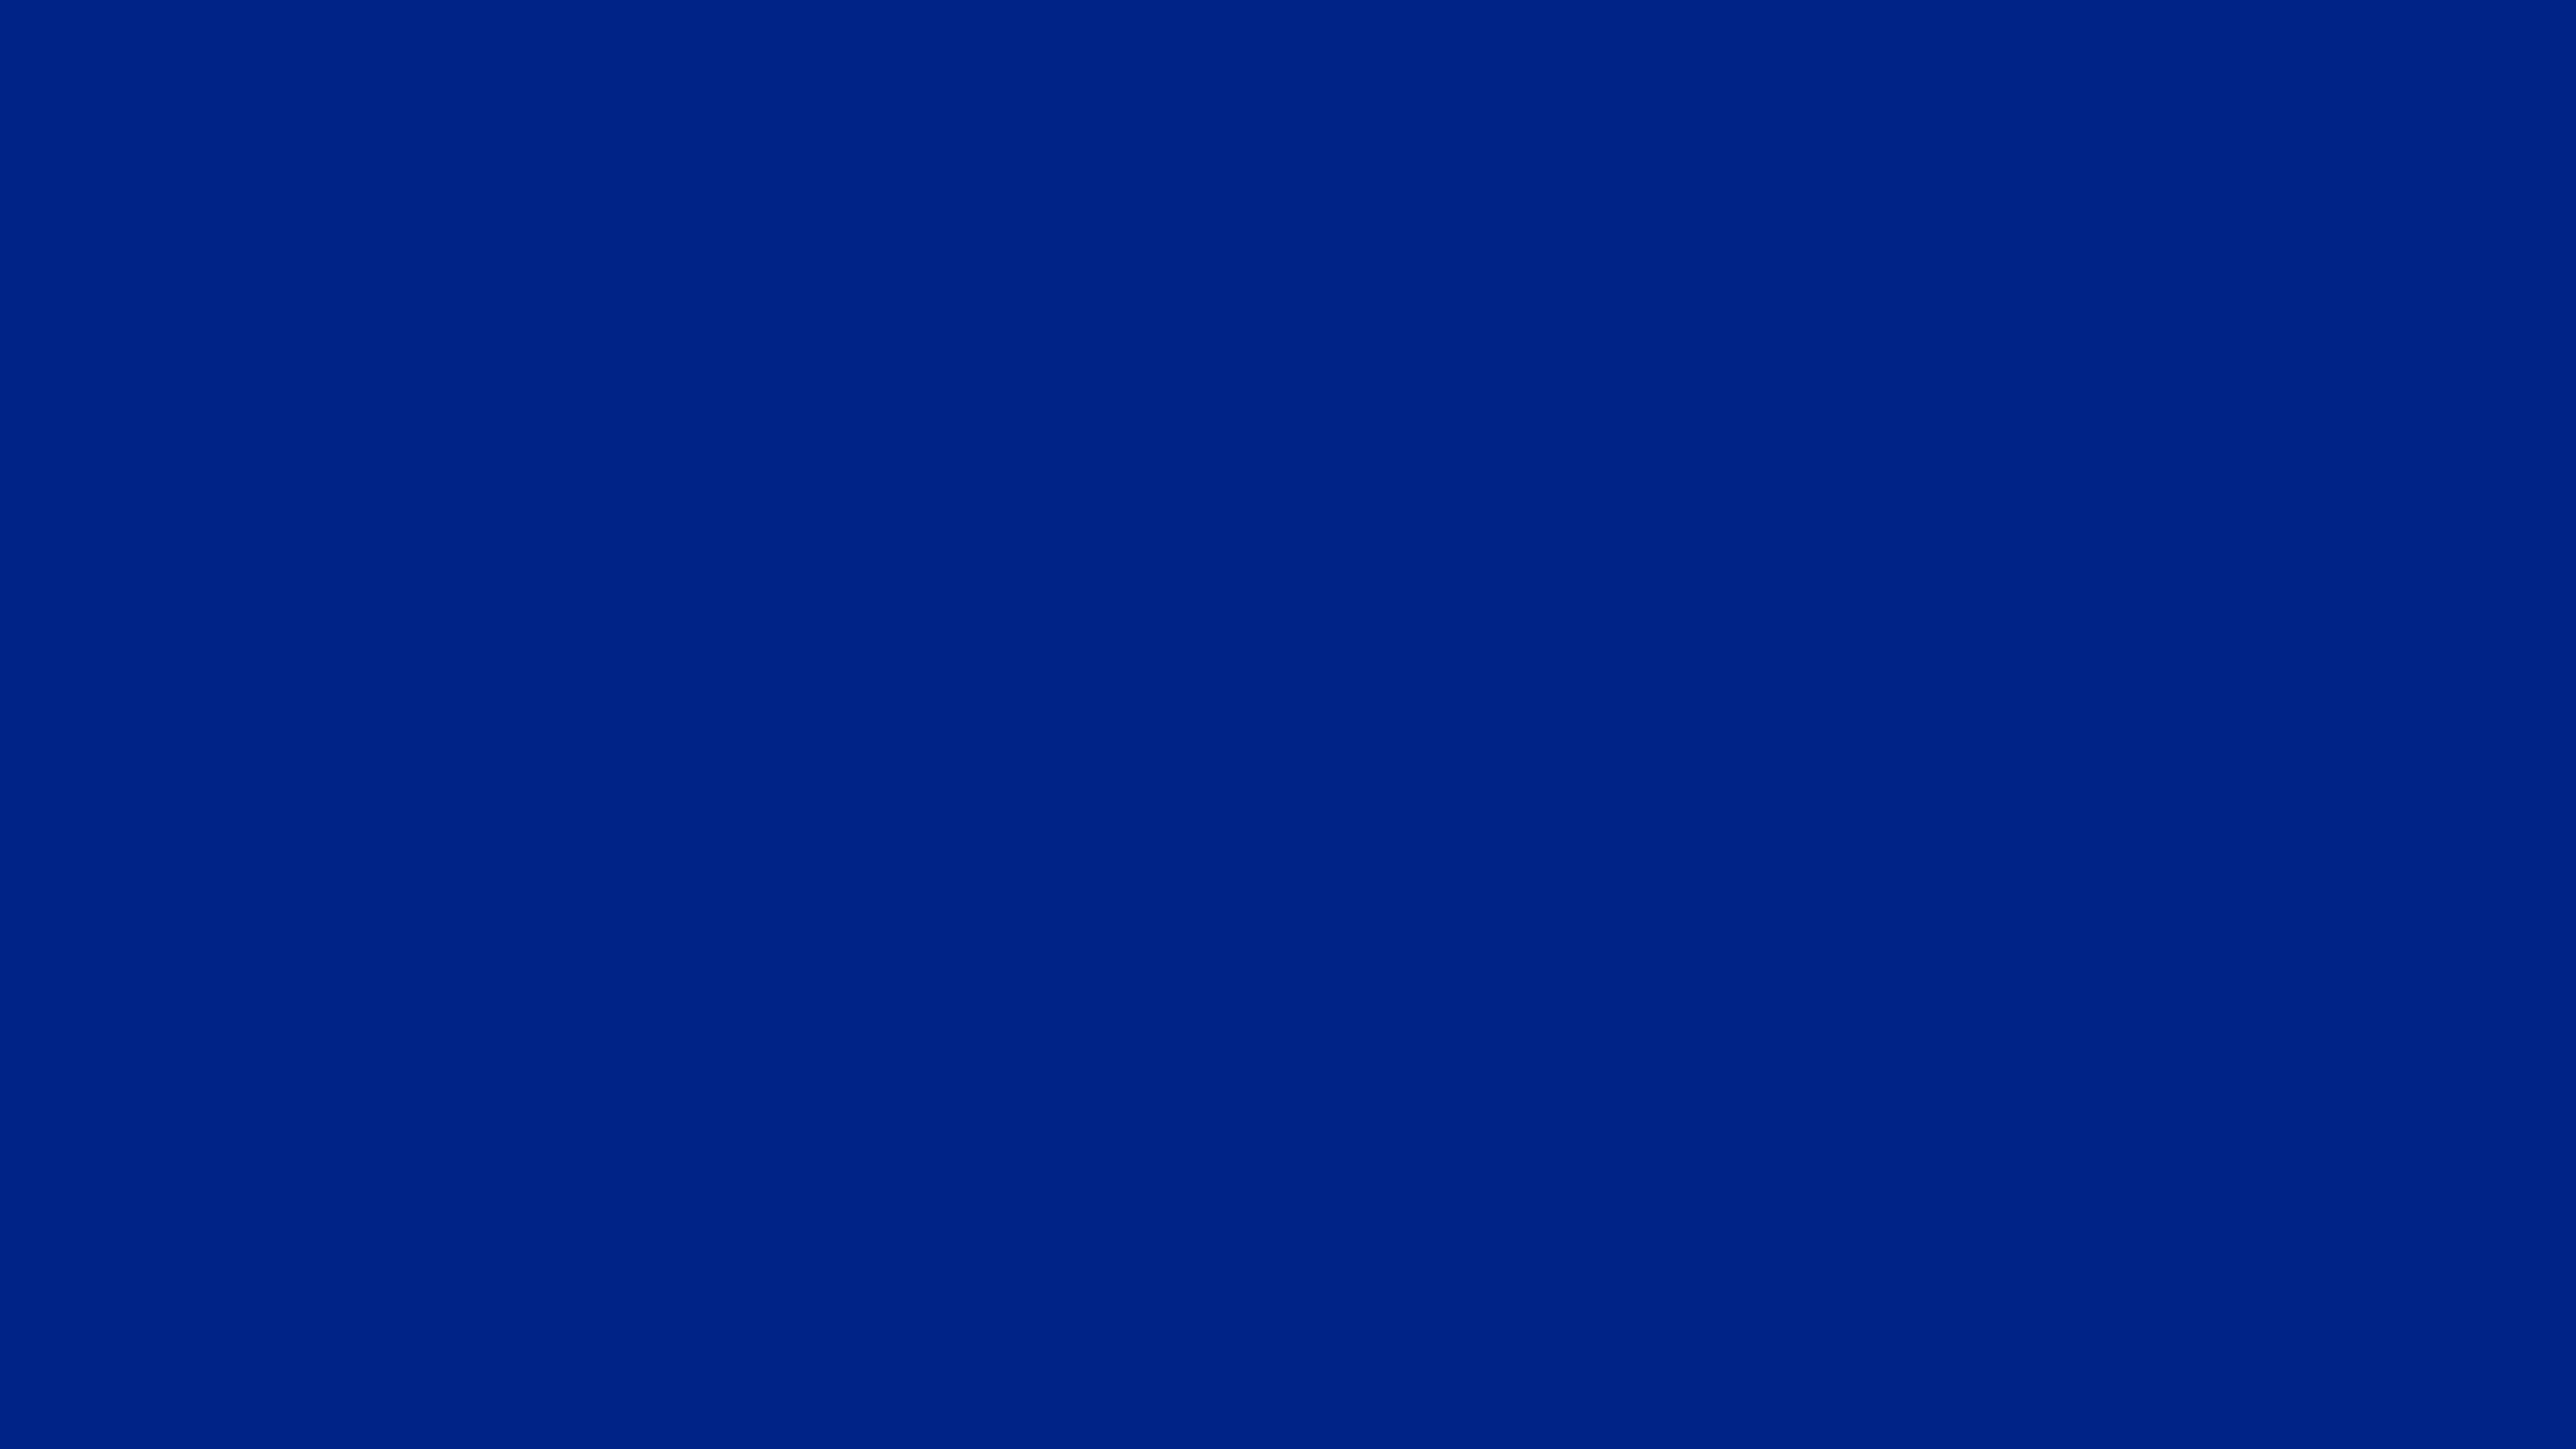 3840x2160 Resolution Blue Solid Color Background